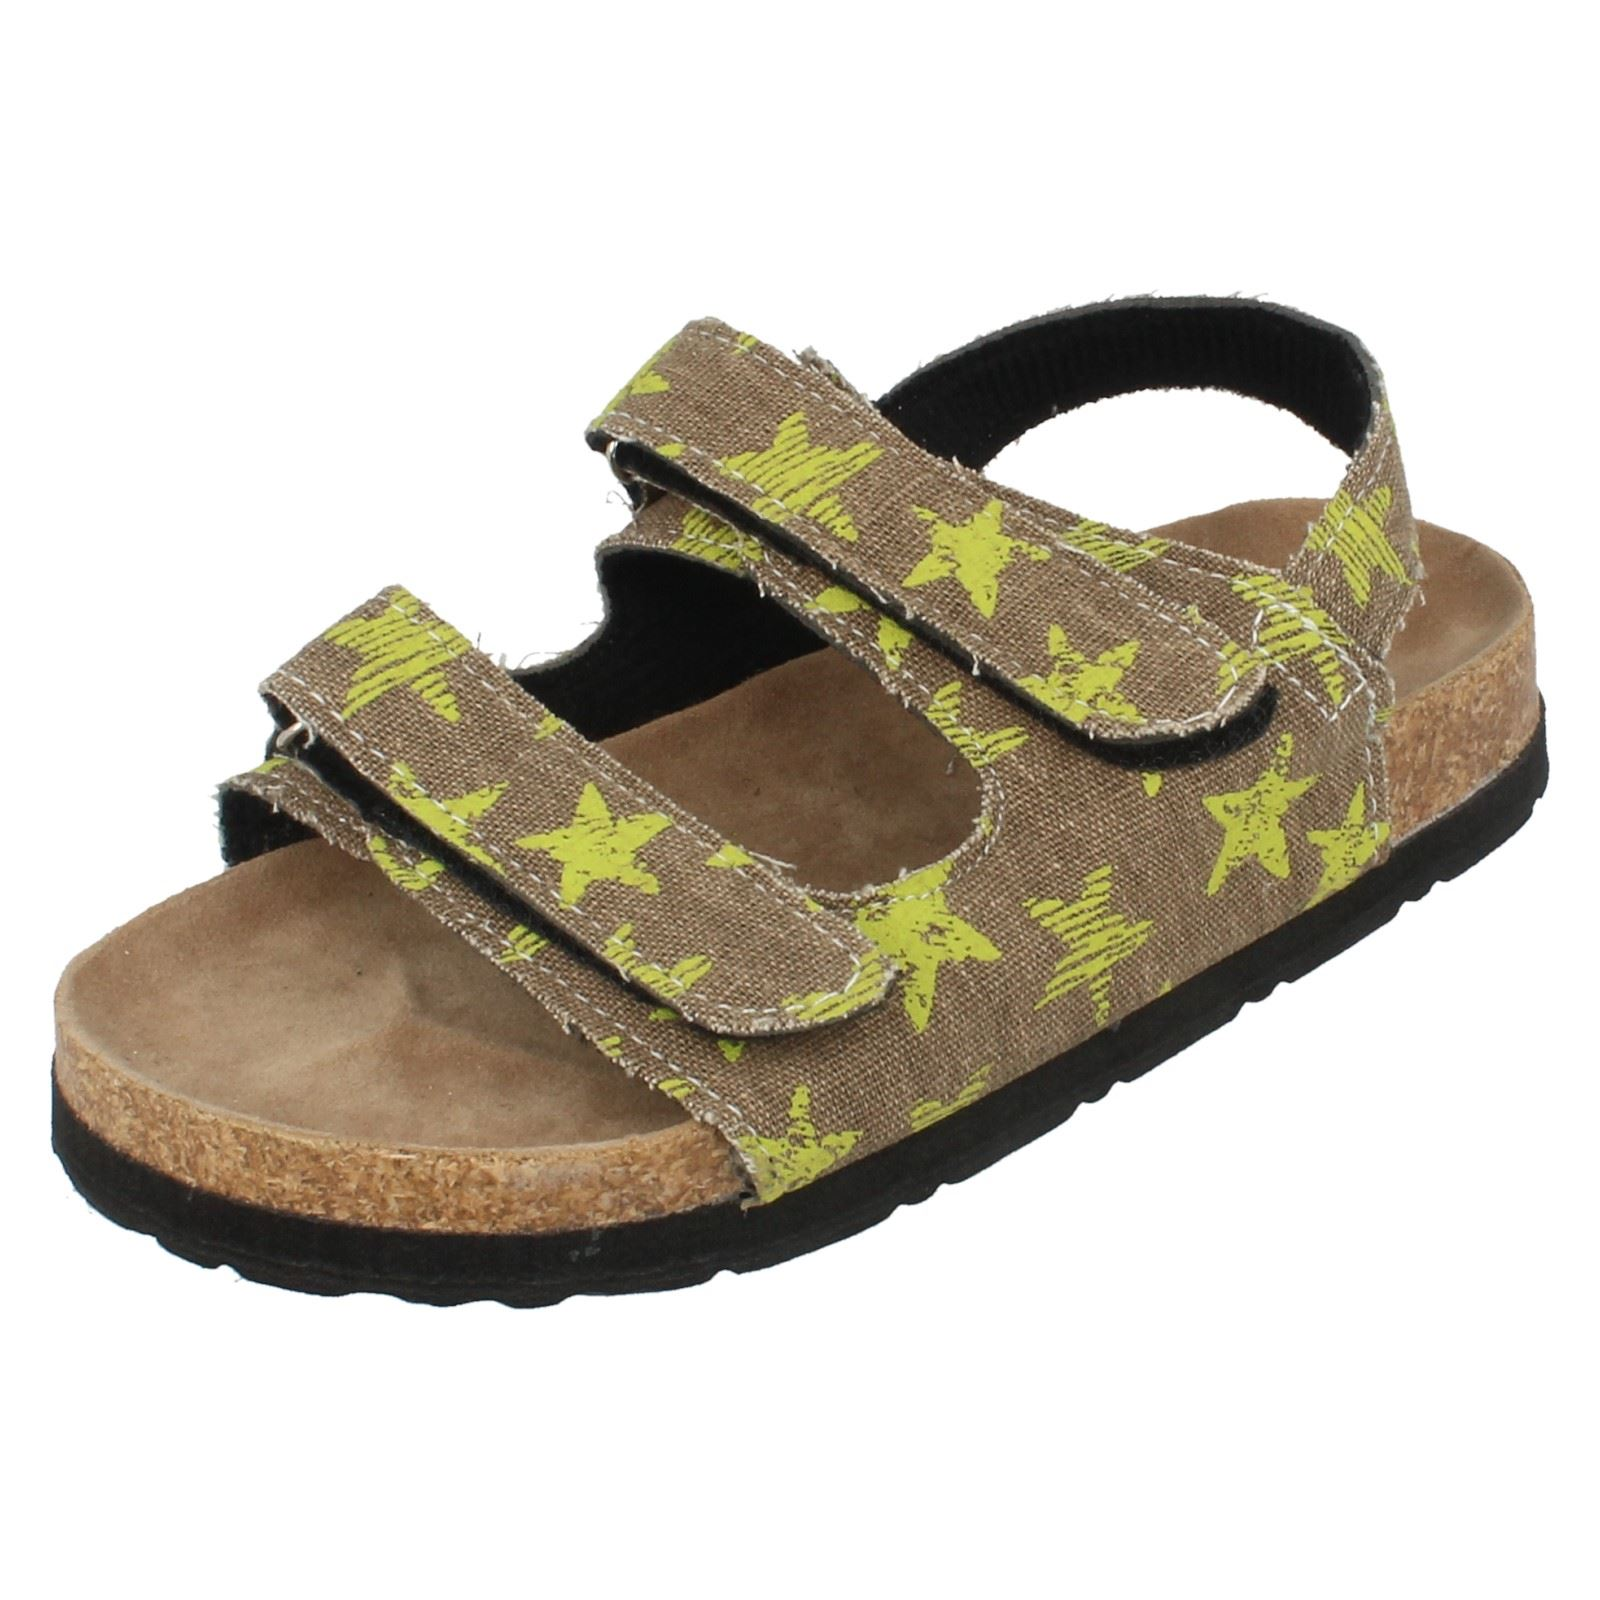 Boys JCDees Strappy Sandals - The Style N0020 ~ N